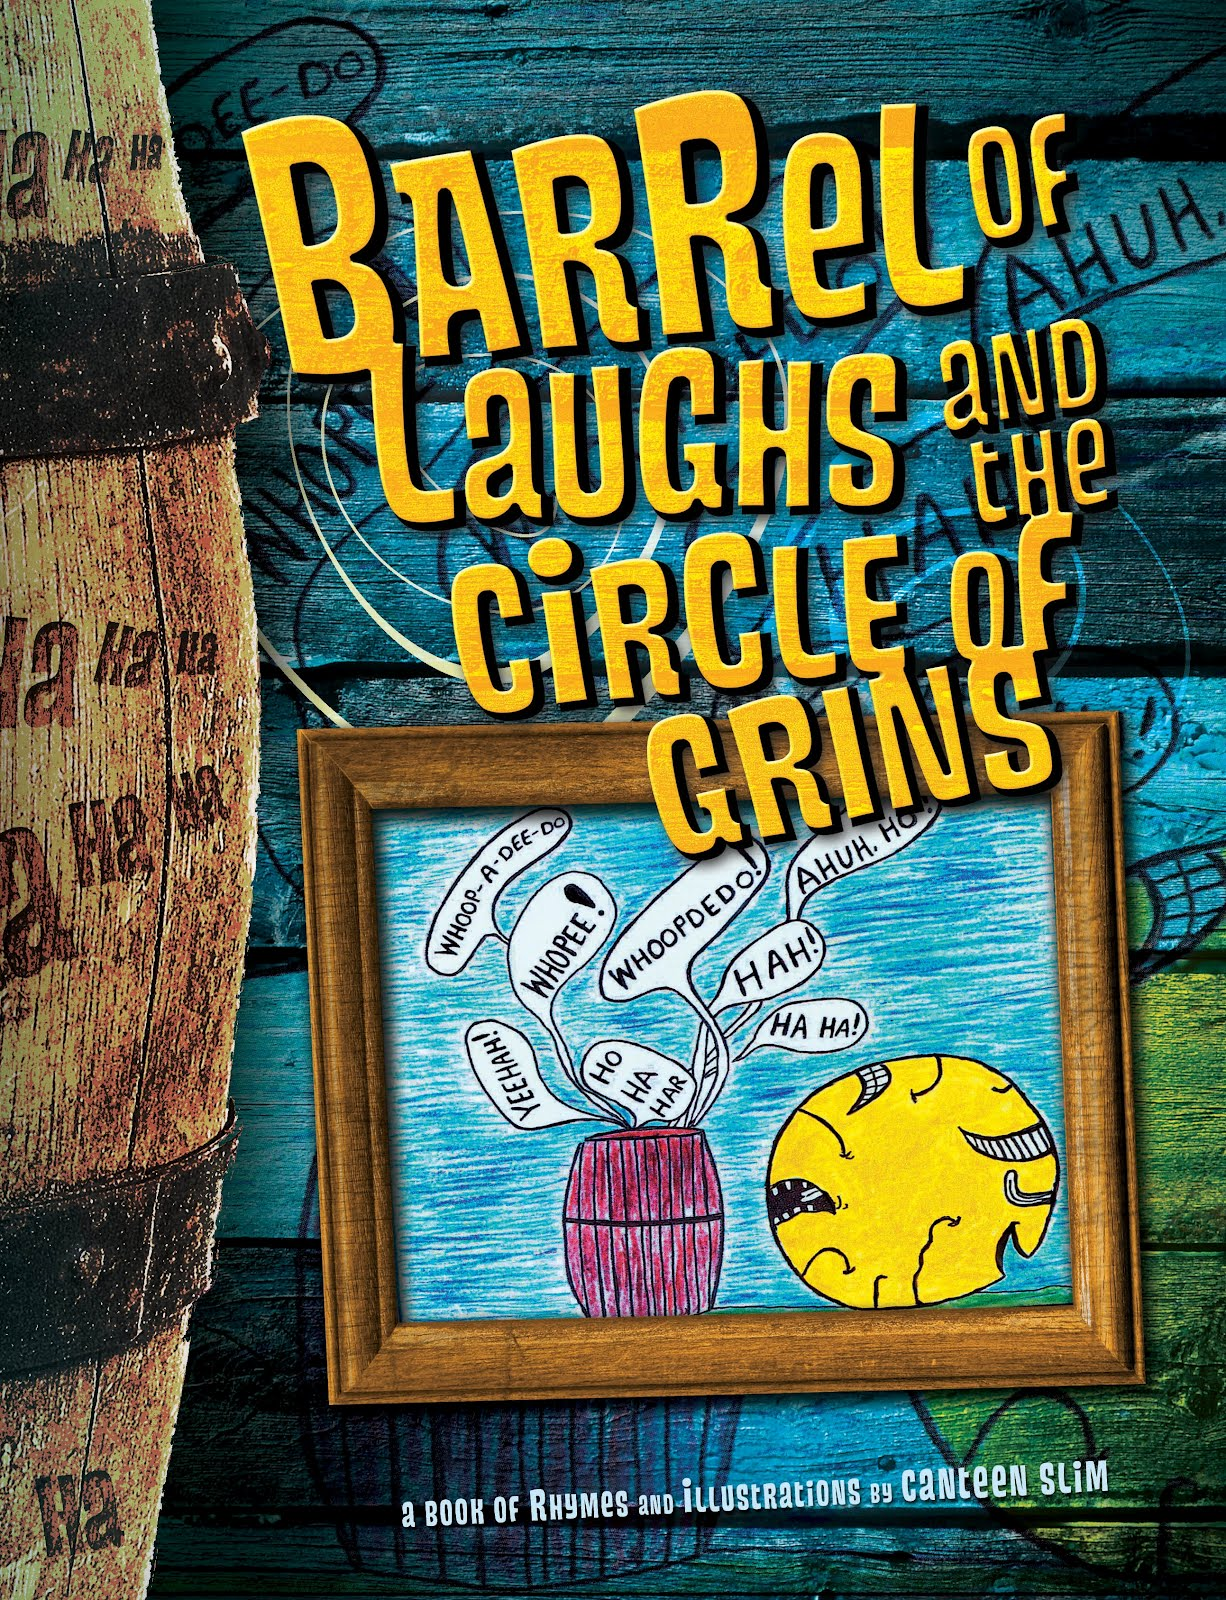 Barrel of Laughs...